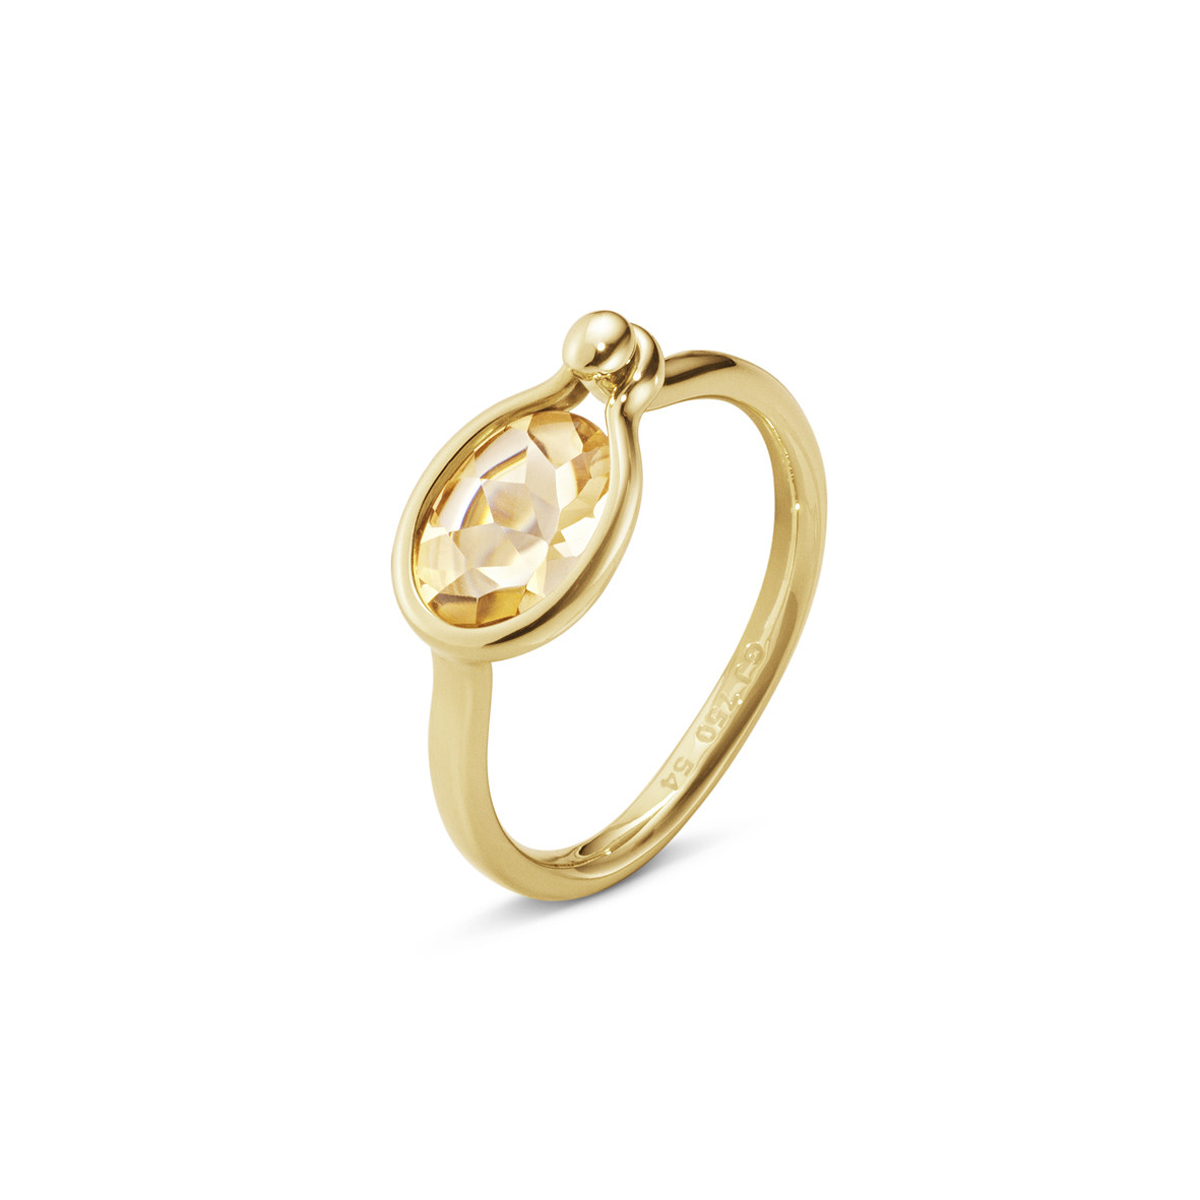 Georg_Jensen_SAVANNAH_SMALL_RING_1506C_YG_CITRINE